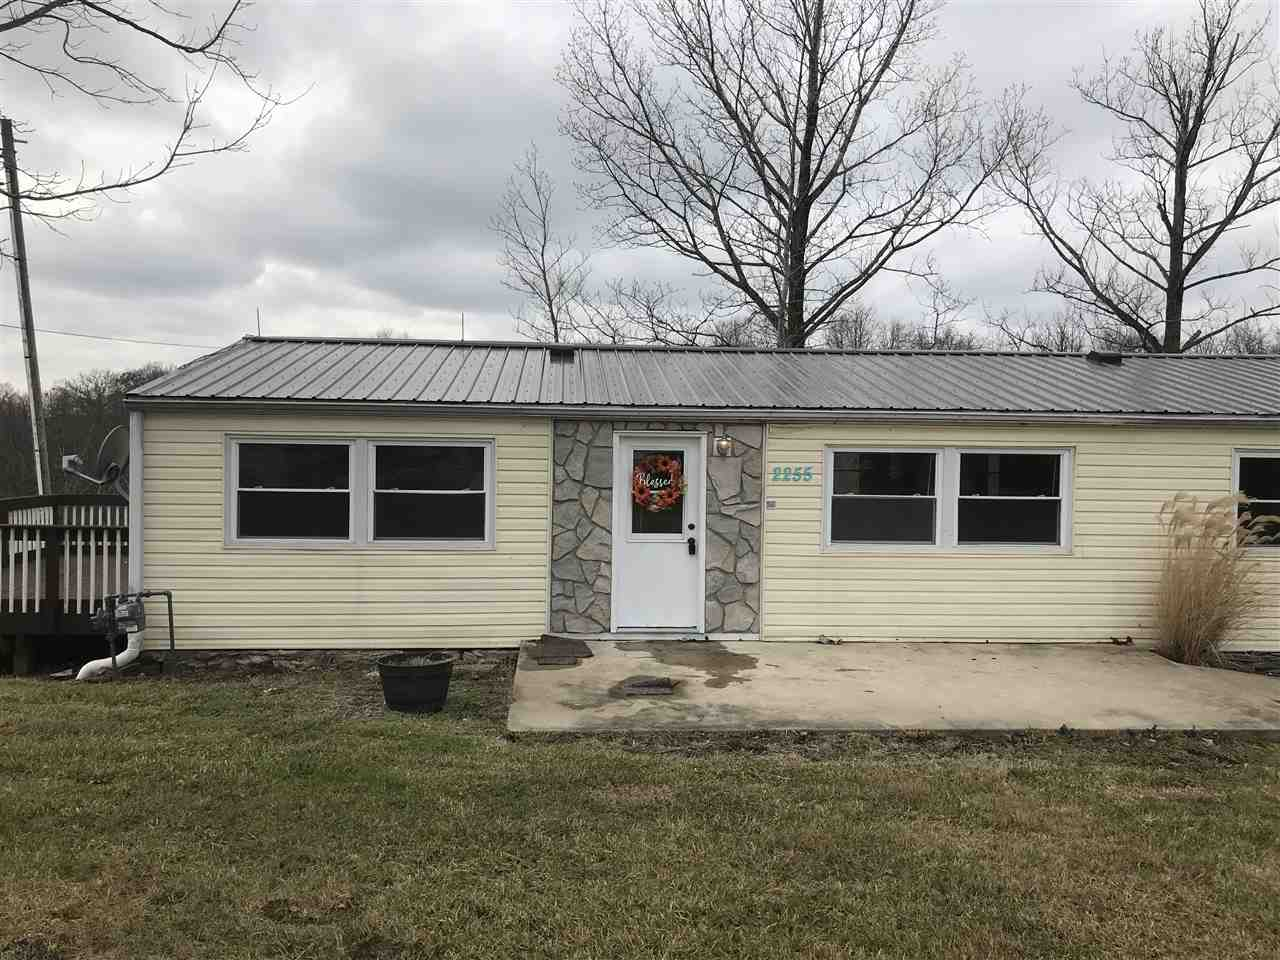 Photo 2 for 2255 Vater Rd Butler, KY 41006